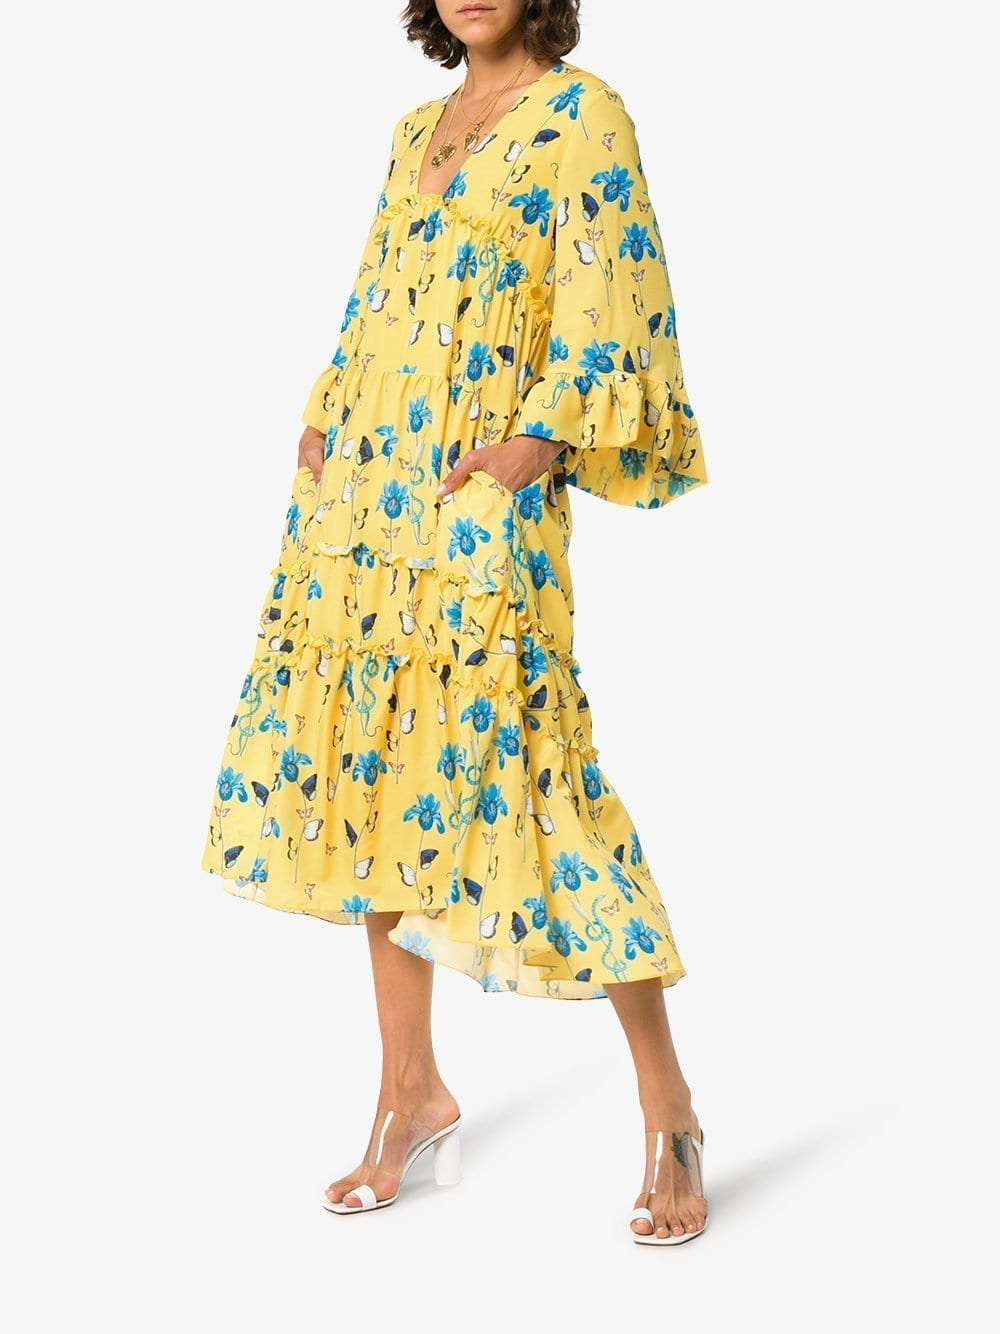 BORGO DE NOR Iris Yellow / Floral Print Dress